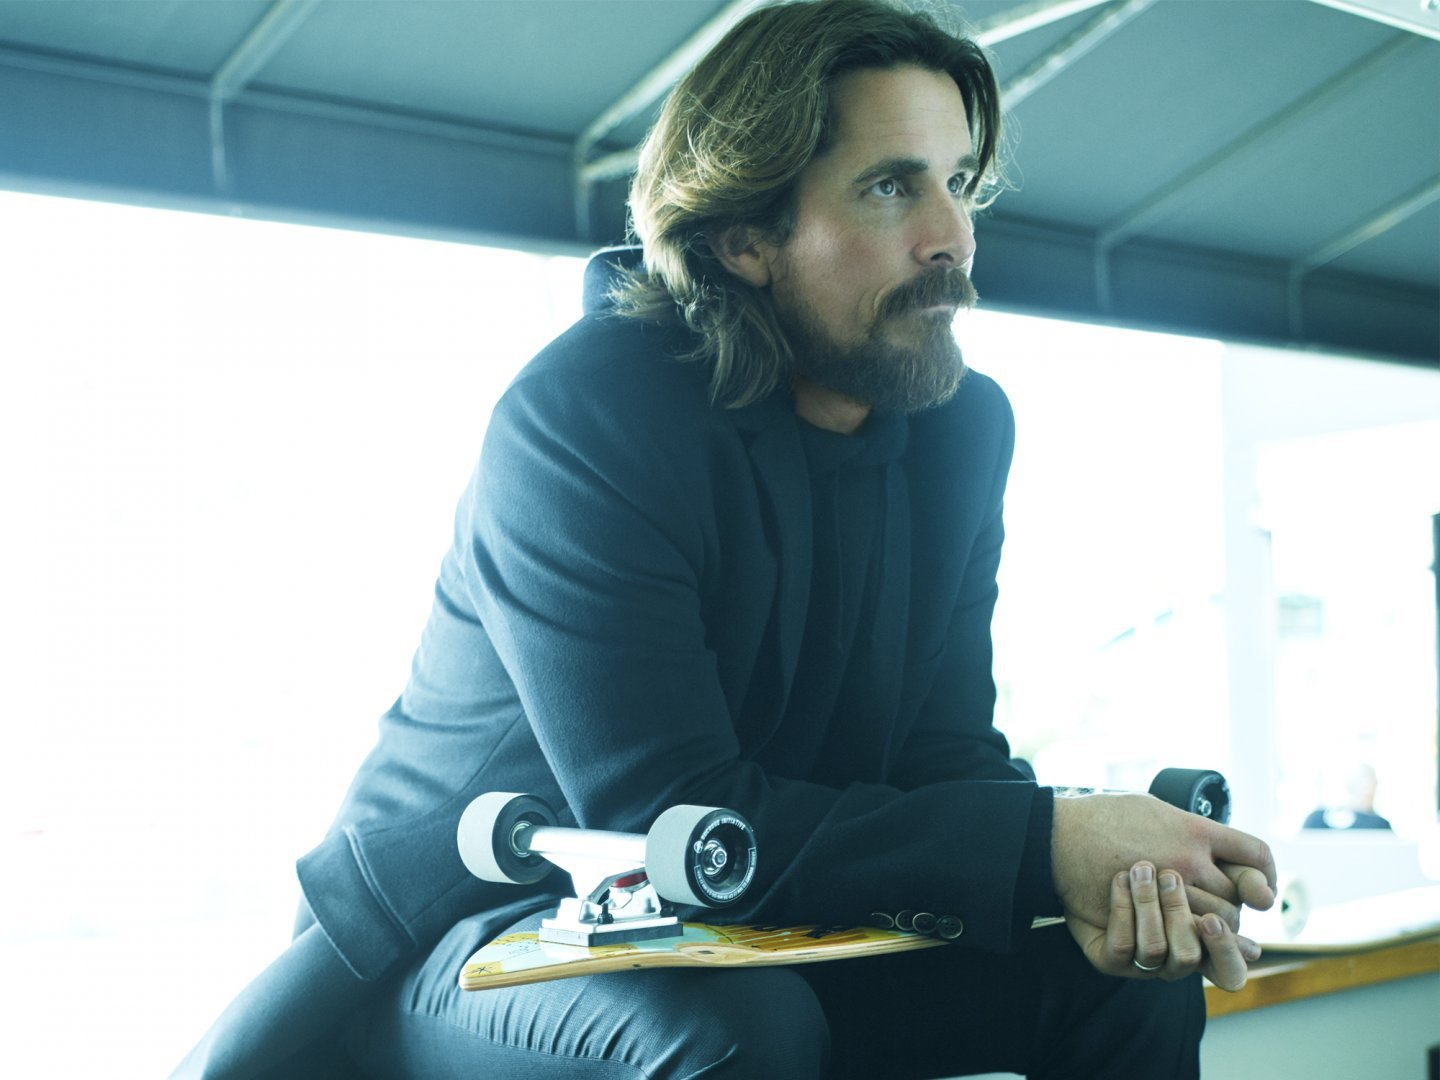 Christian-Bale-Esquire-interview-11-43